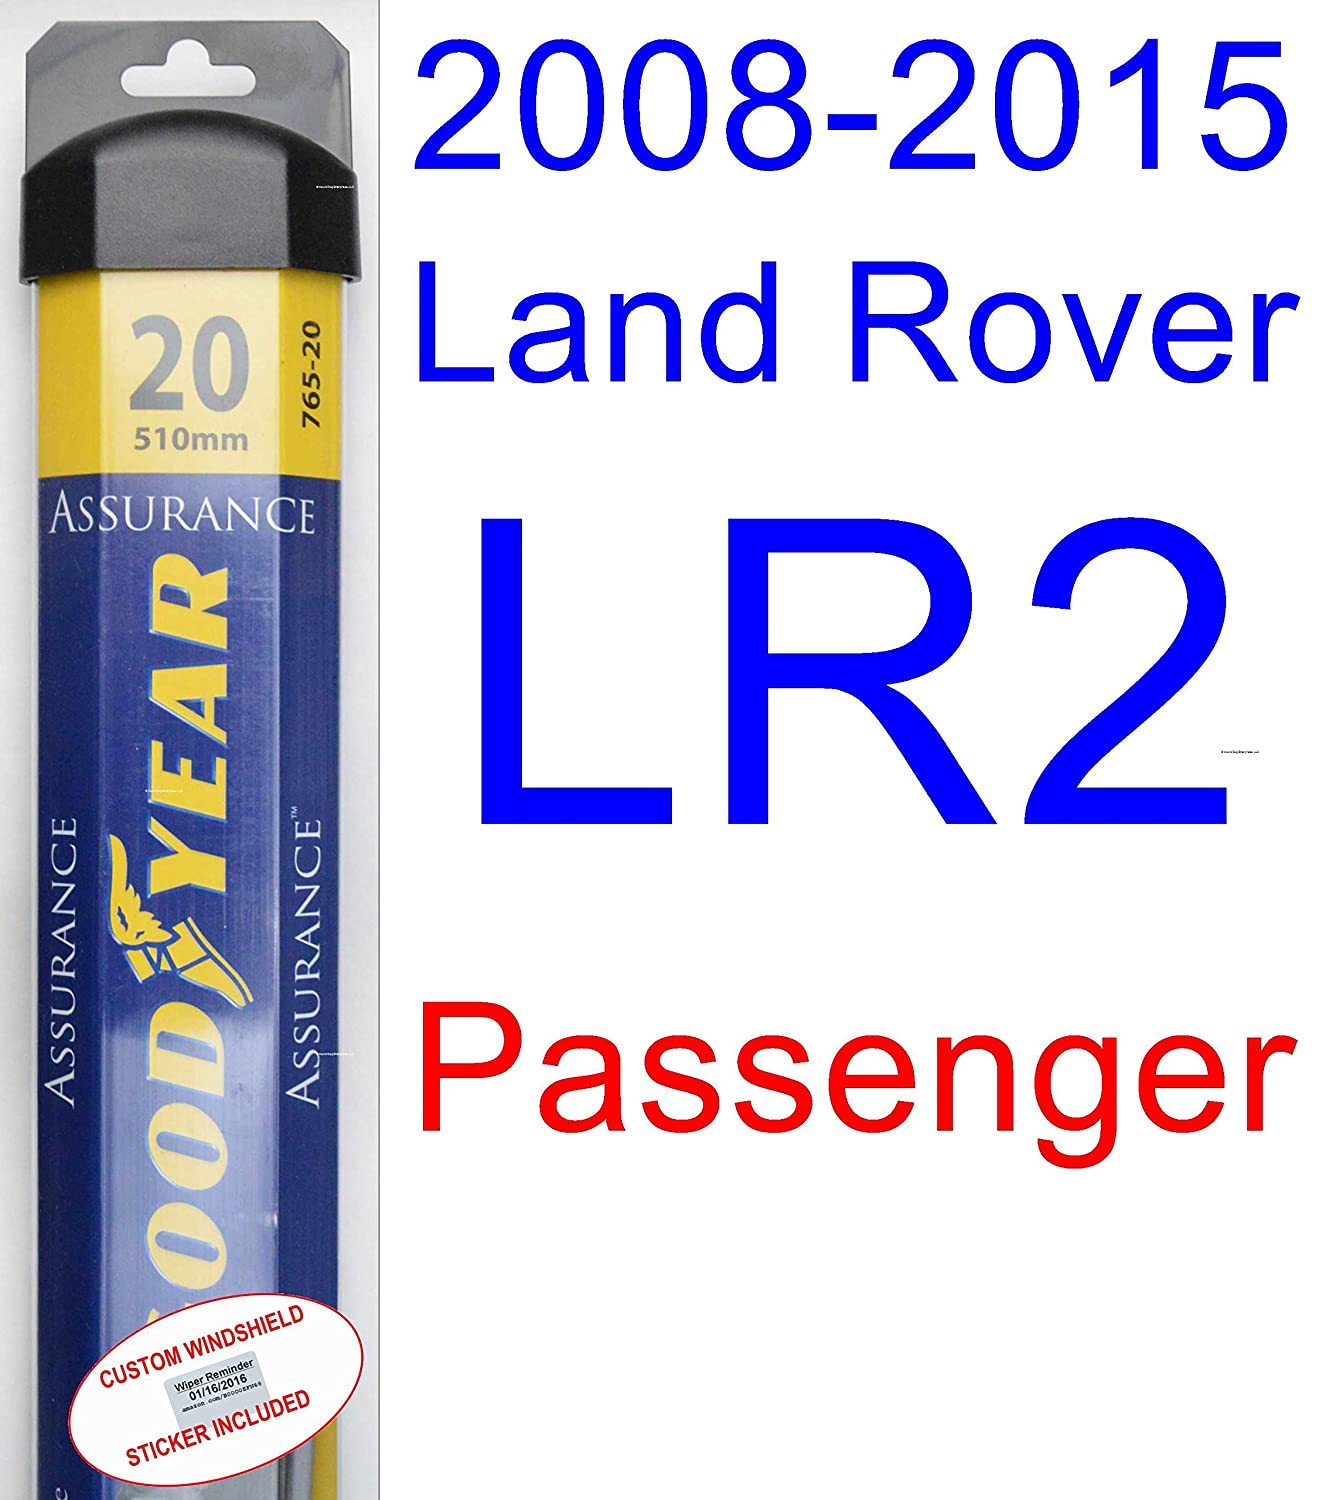 Amazon.com: 2008-2015 Land Rover LR2 Wiper Blade (Passenger) (Goodyear  Wiper Blades-Assurance) (2009,2010,2011,2012,2013,2014): Automotive